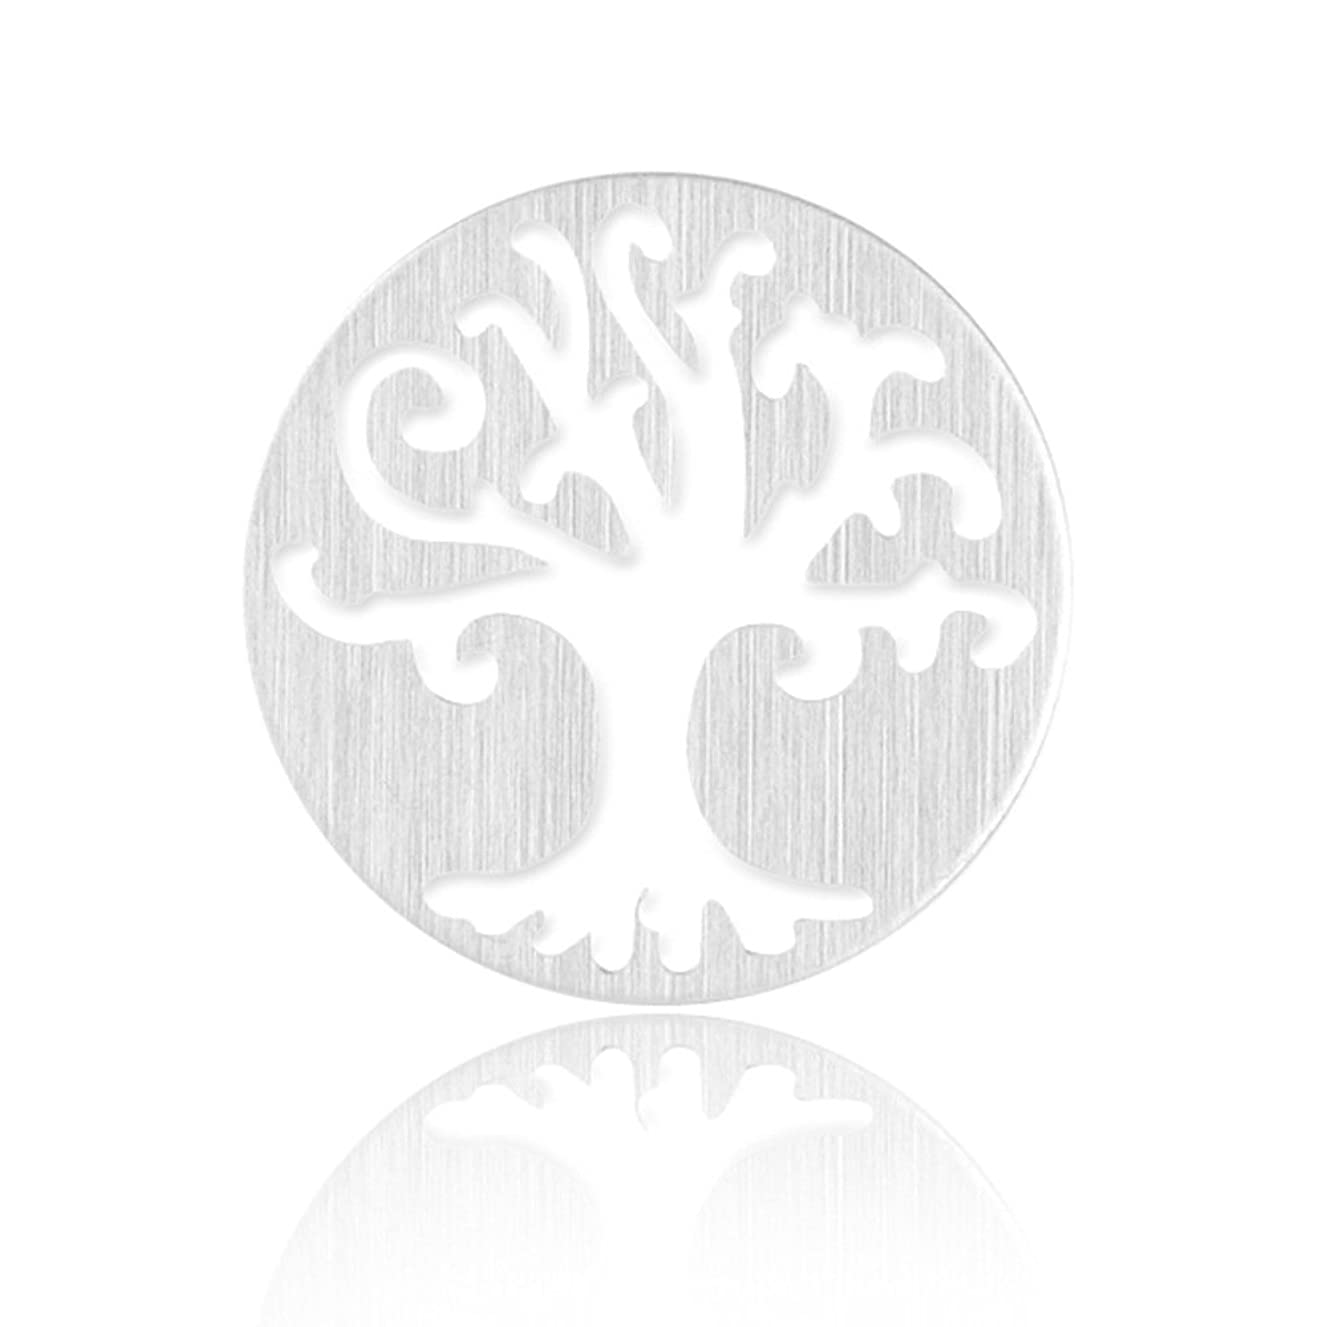 Paialco Stainless Steel Tree of Life Round Window Plate for Floating Charm Pendant